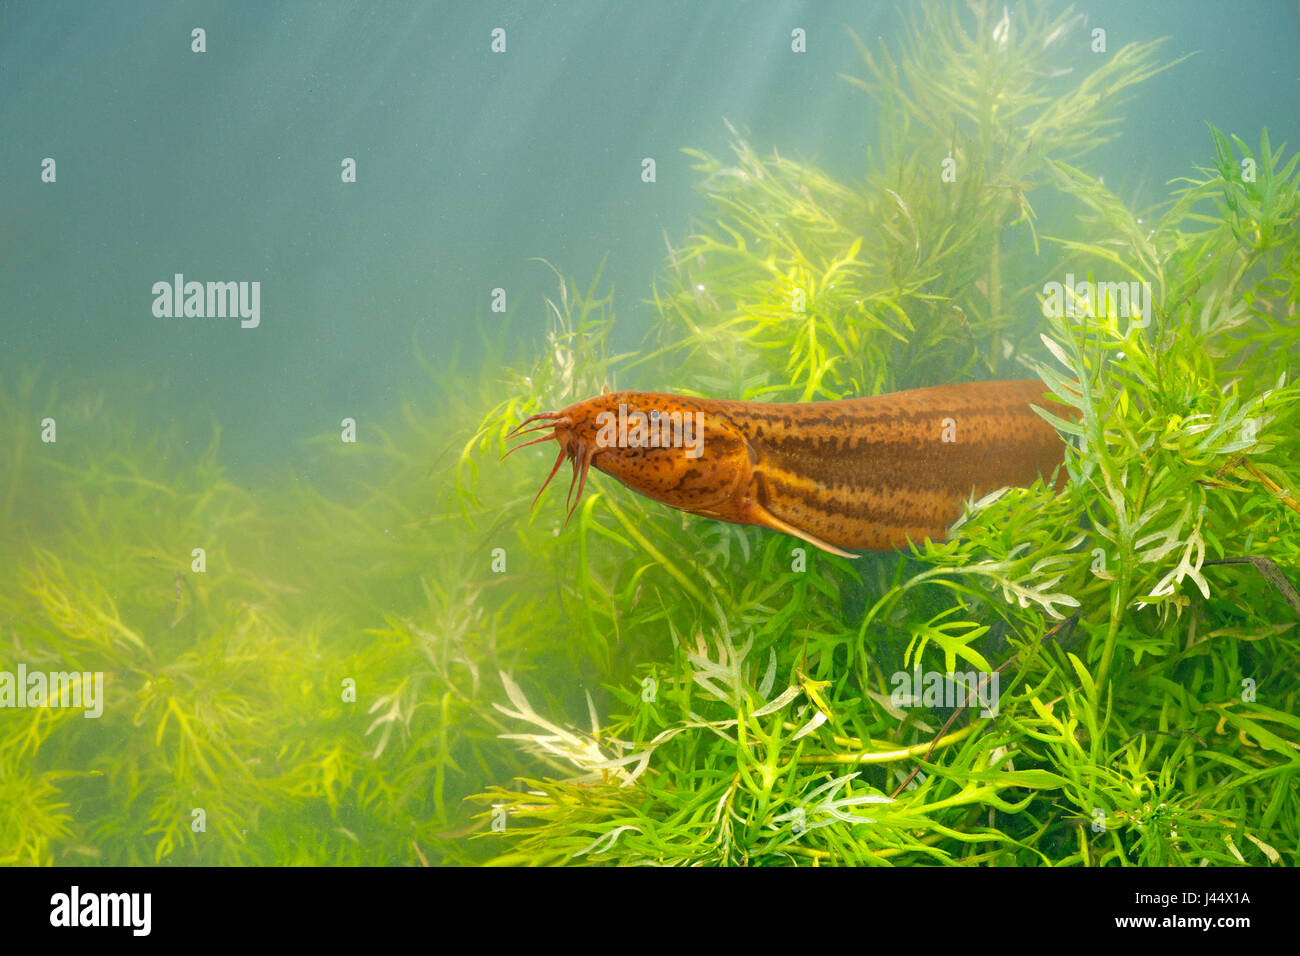 photo of a wheaterfish between Featherfoil against a blue grey background Stock Photo